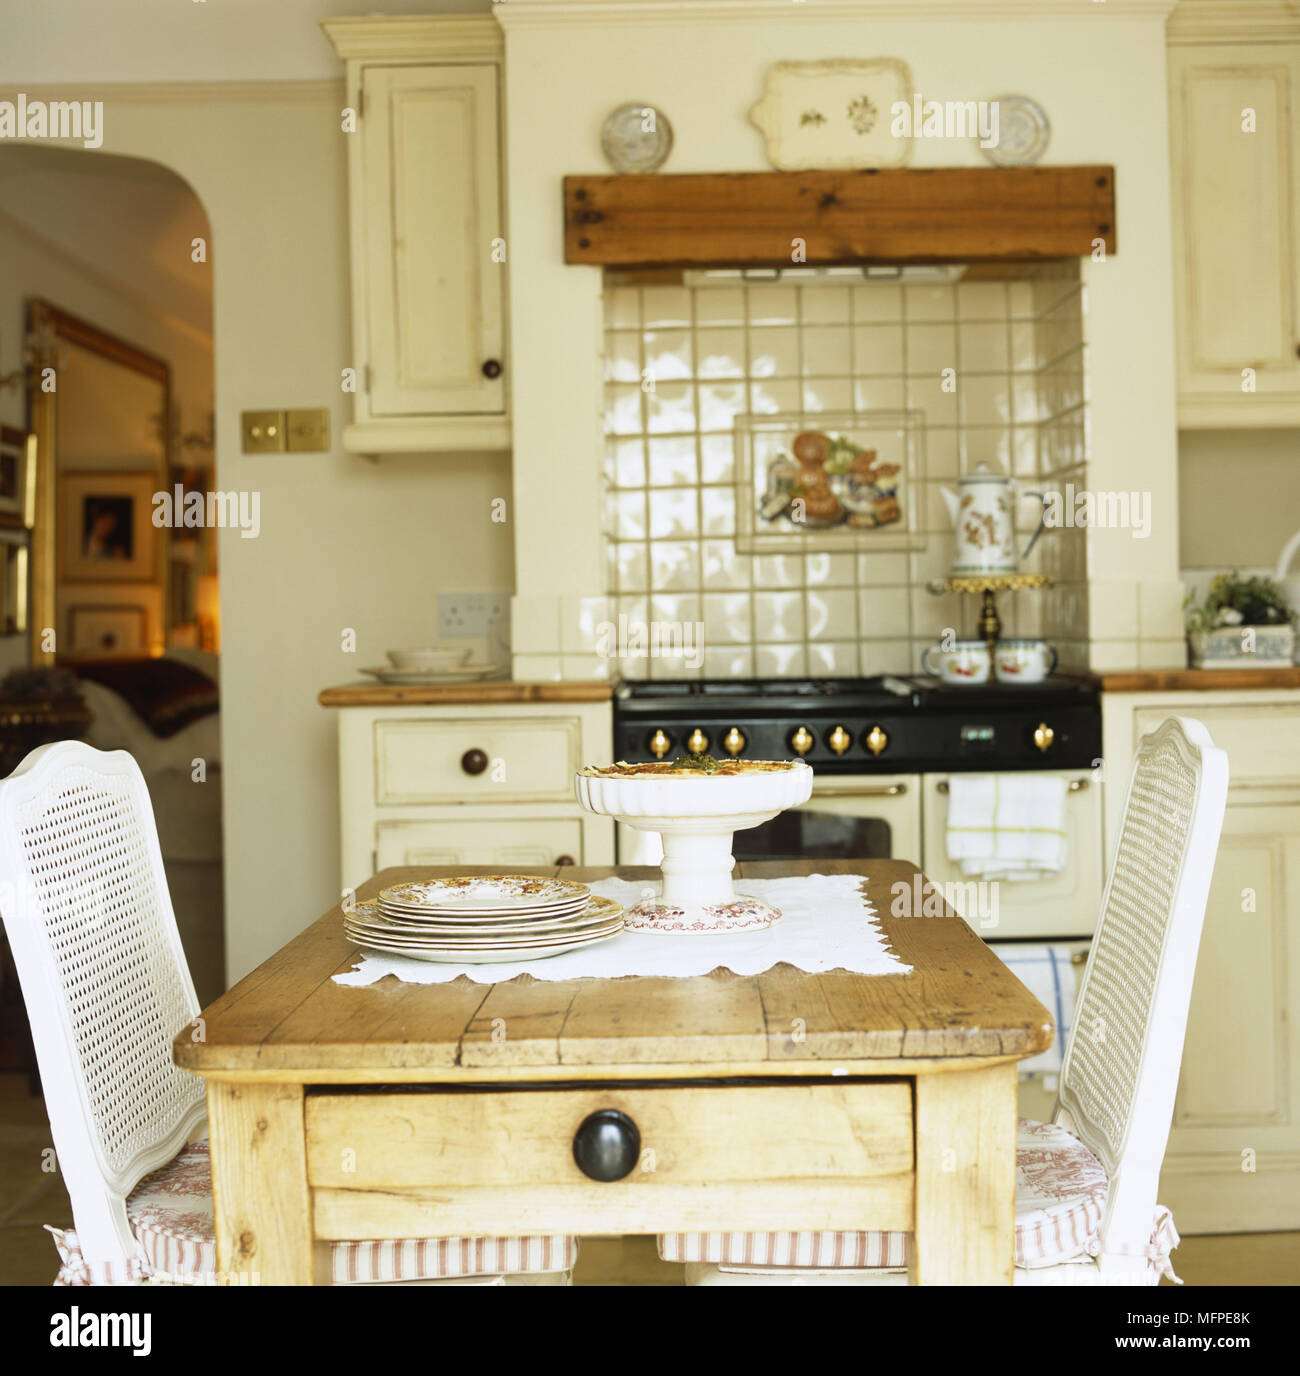 Kitchen Interior With Pink Furniture And Tiles Stock: Interiors Kitchen Aga Traditional Stock Photos & Interiors